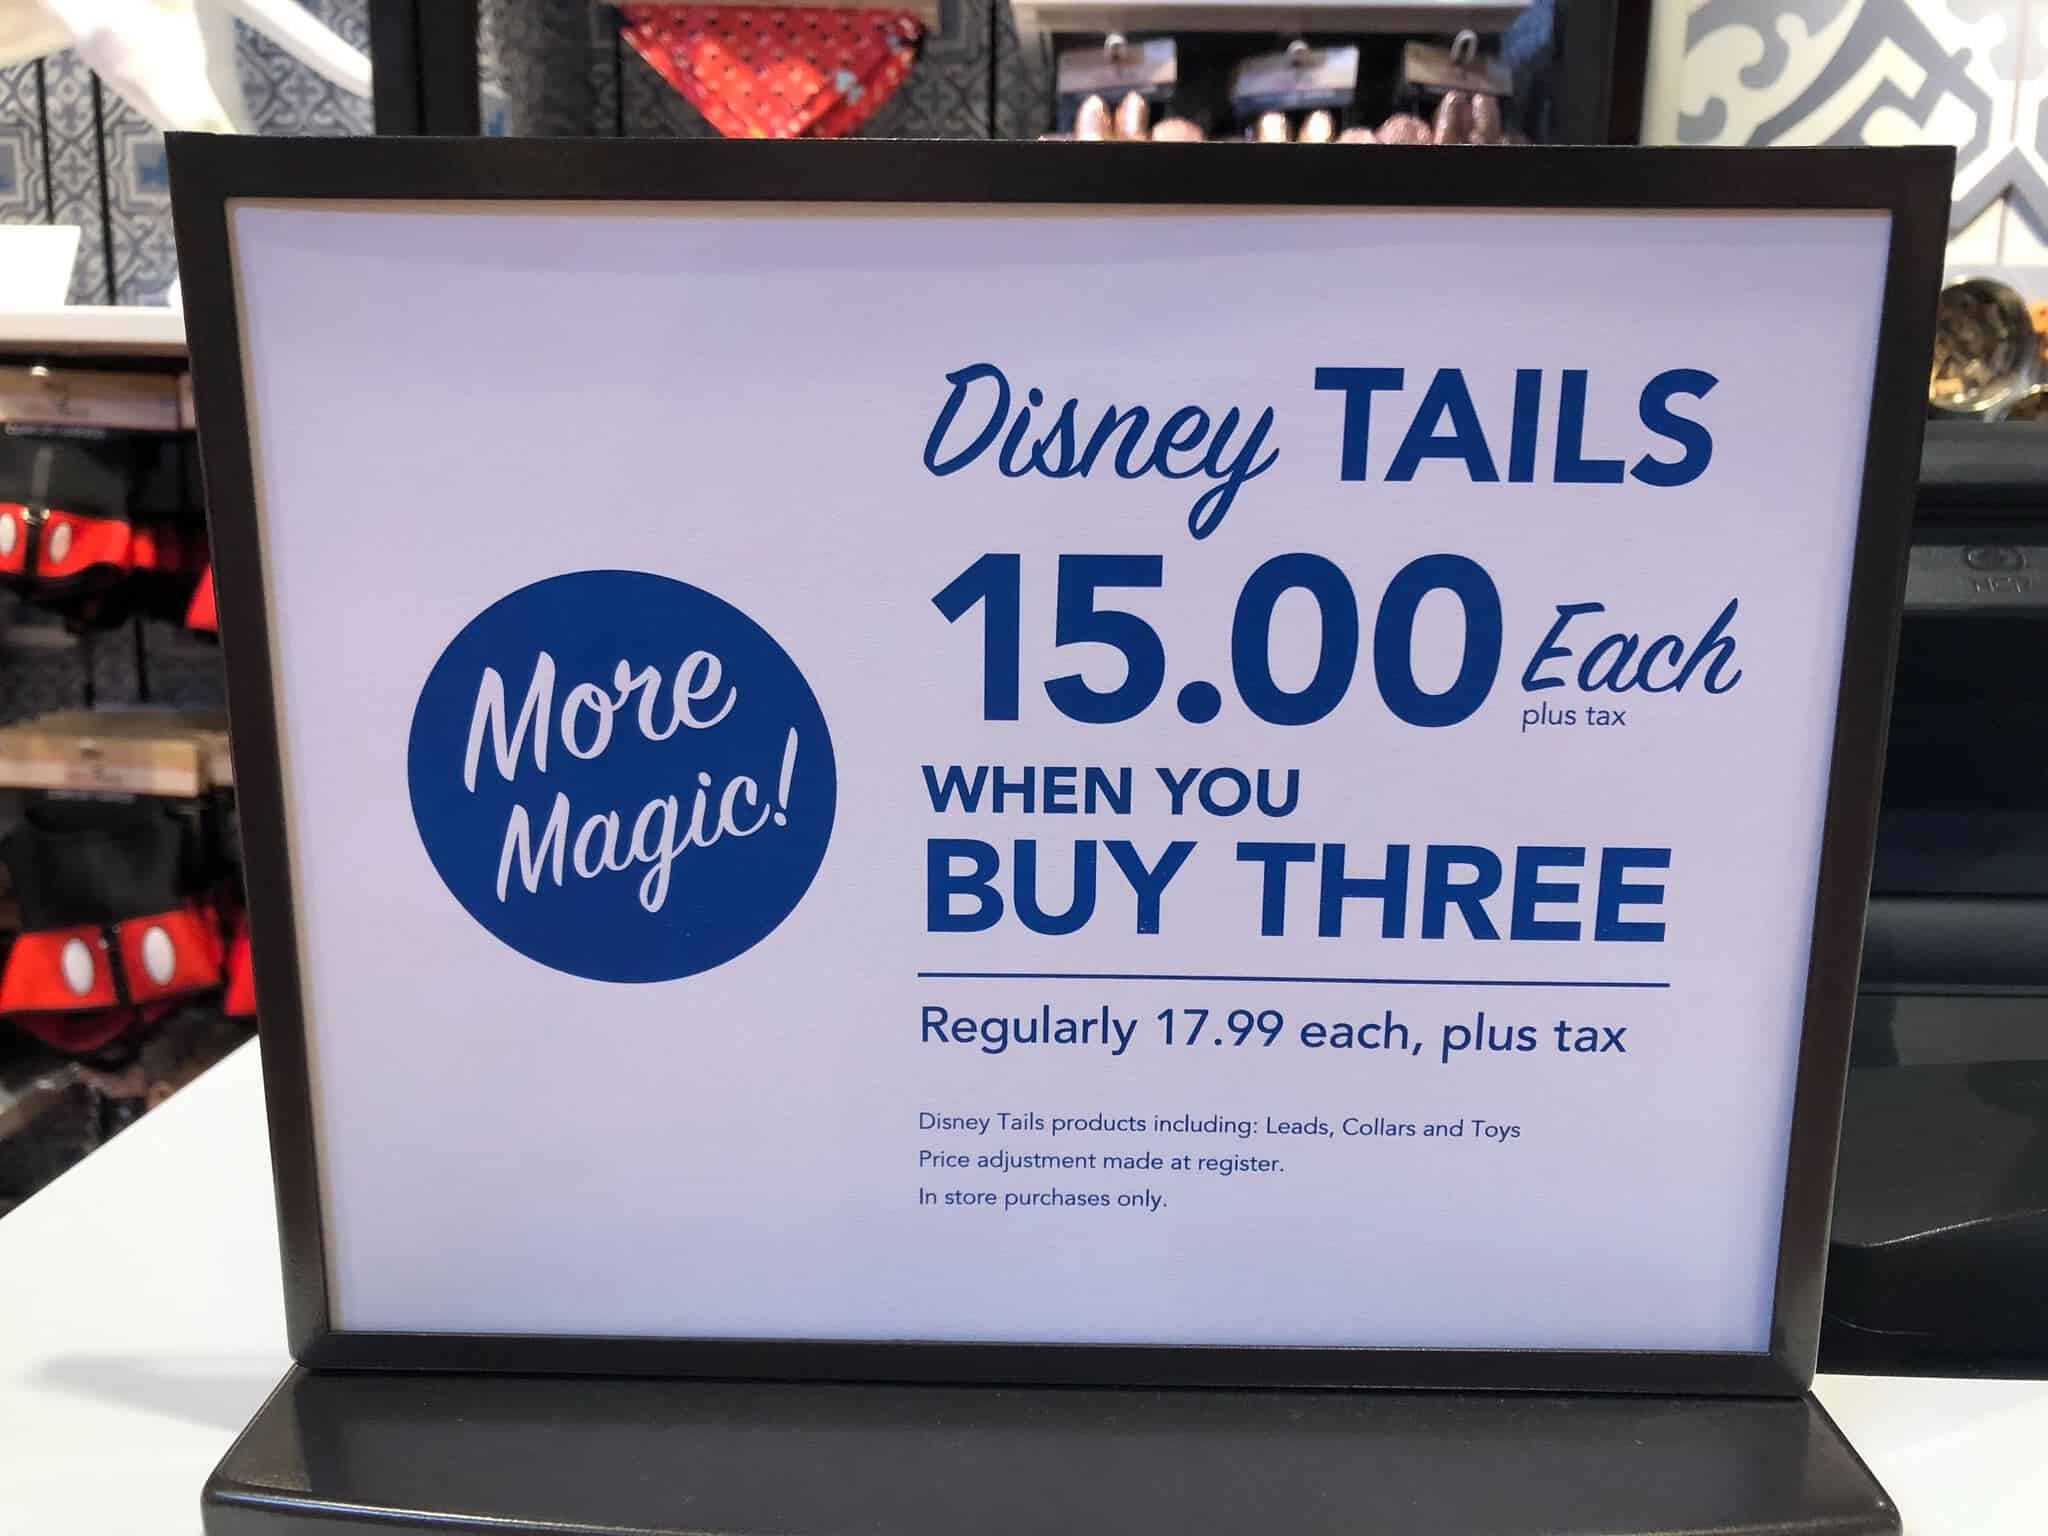 Disney Tails toys and collars on sale